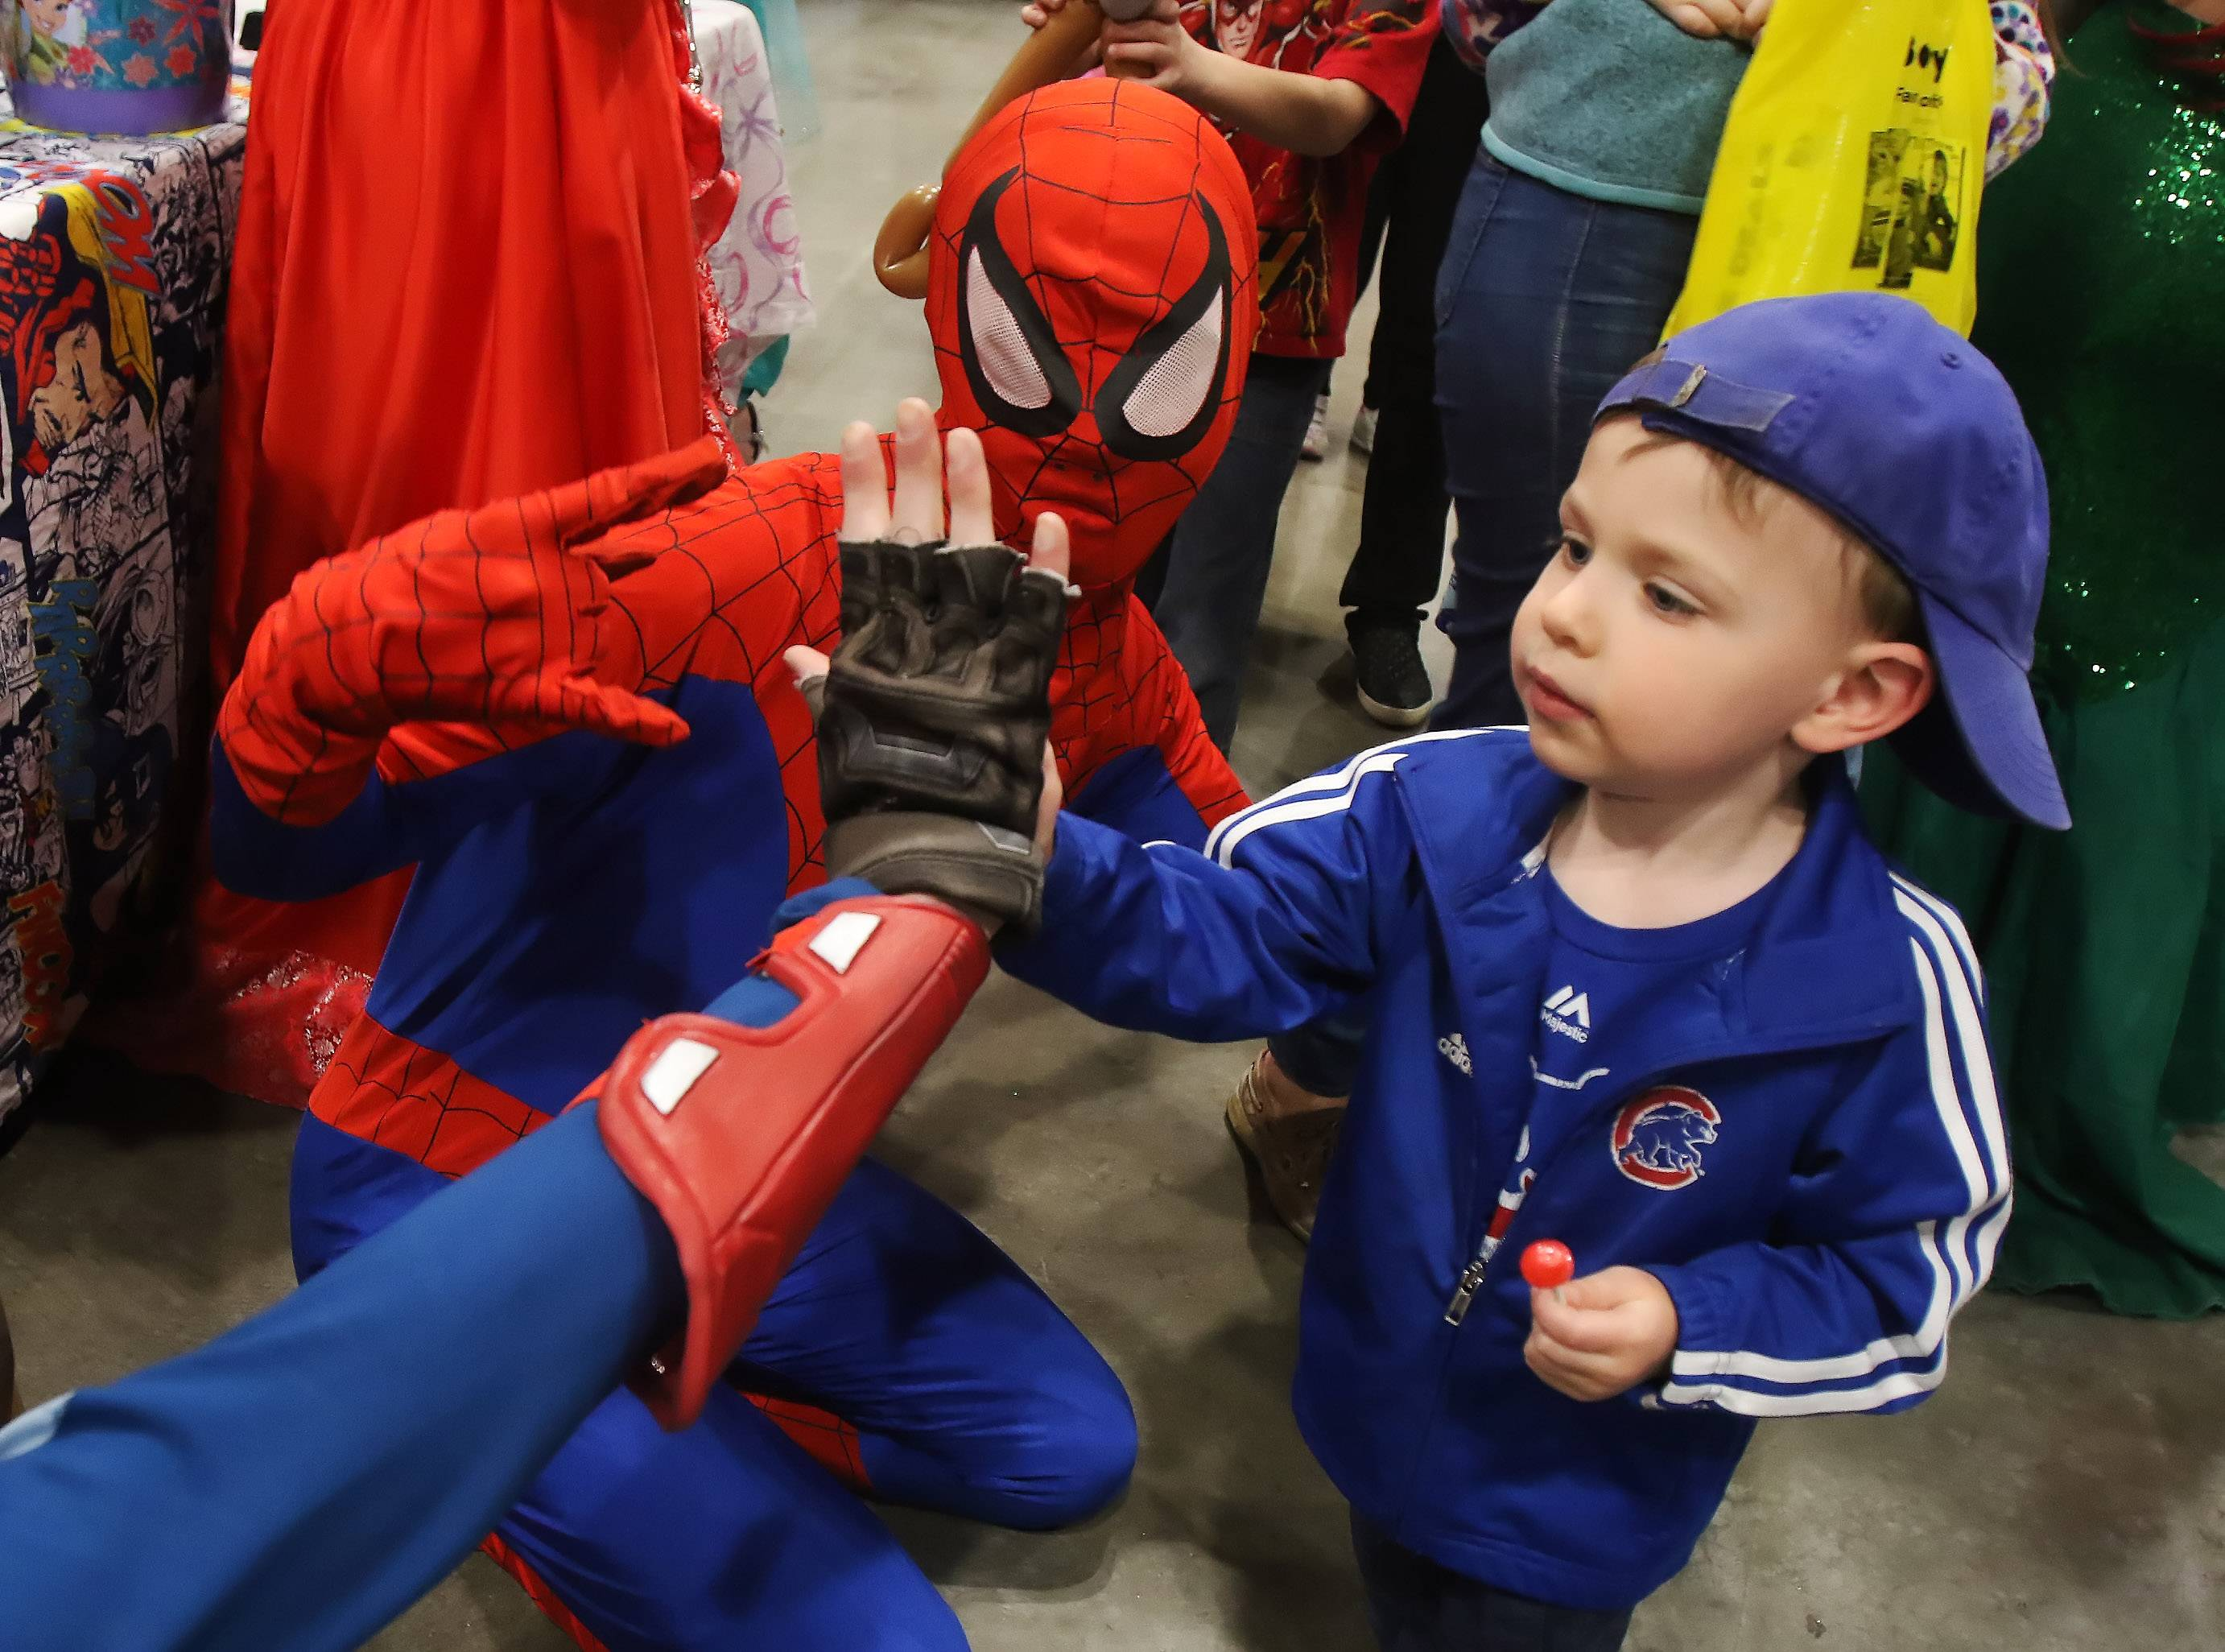 Lucas Duffy, 2, of Dundee Township slaps hands with Captain America, played by Alex Rogers and Spiderman, played by Joe Franzen, of Kids Kustom Parties in Palatine during the 12th annual Kids Expo on Sunday at the Schaumburg Convention Center. The Family Time Magazine event featured live animals, costumed characters, inflatable bouncers, miniature golf and more.